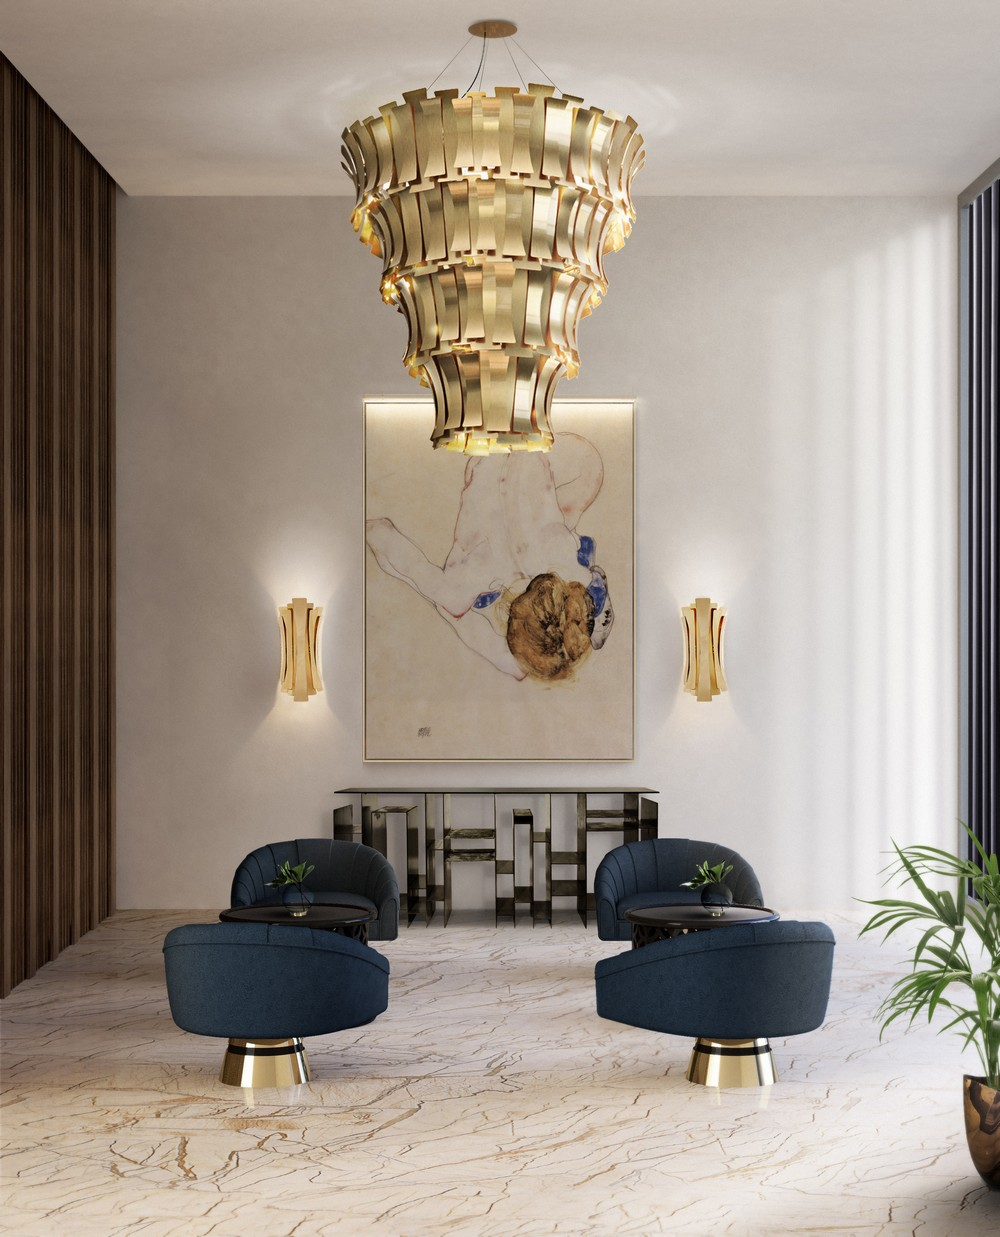 The Ultimate Design Guide For ISaloni & Milan Design Week 2019 milan design week The Ultimate Design Guide For ISaloni & Milan Design Week 2019 DL Project Berlin Hotel 13